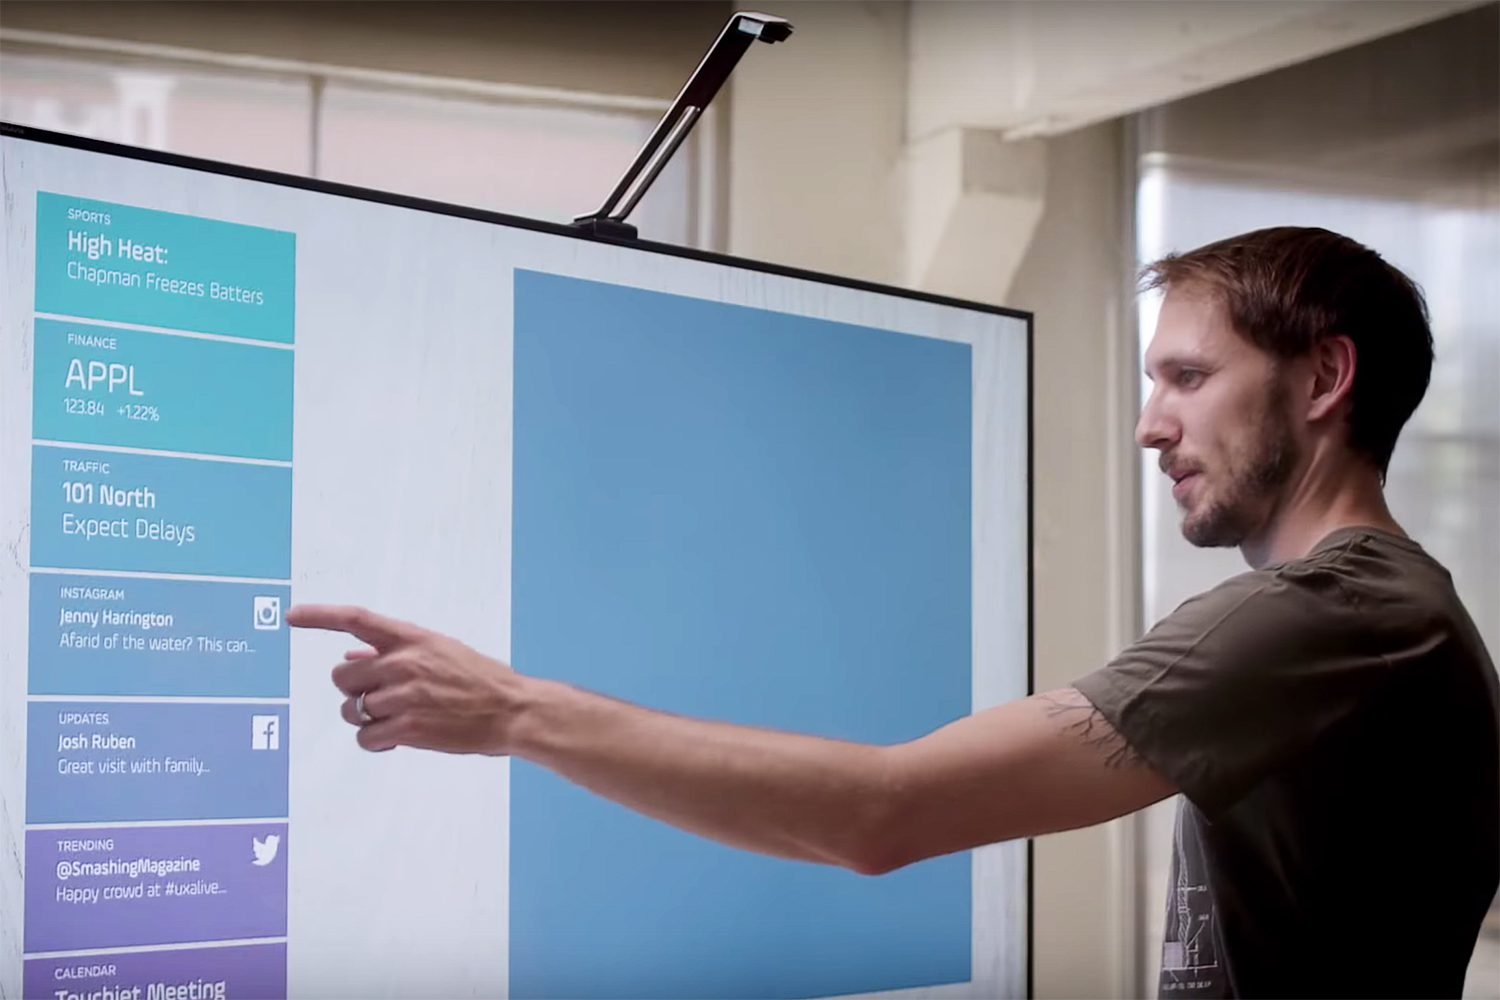 the-touchjet-wave-turns-your-tv-into-a-touchscreen-0